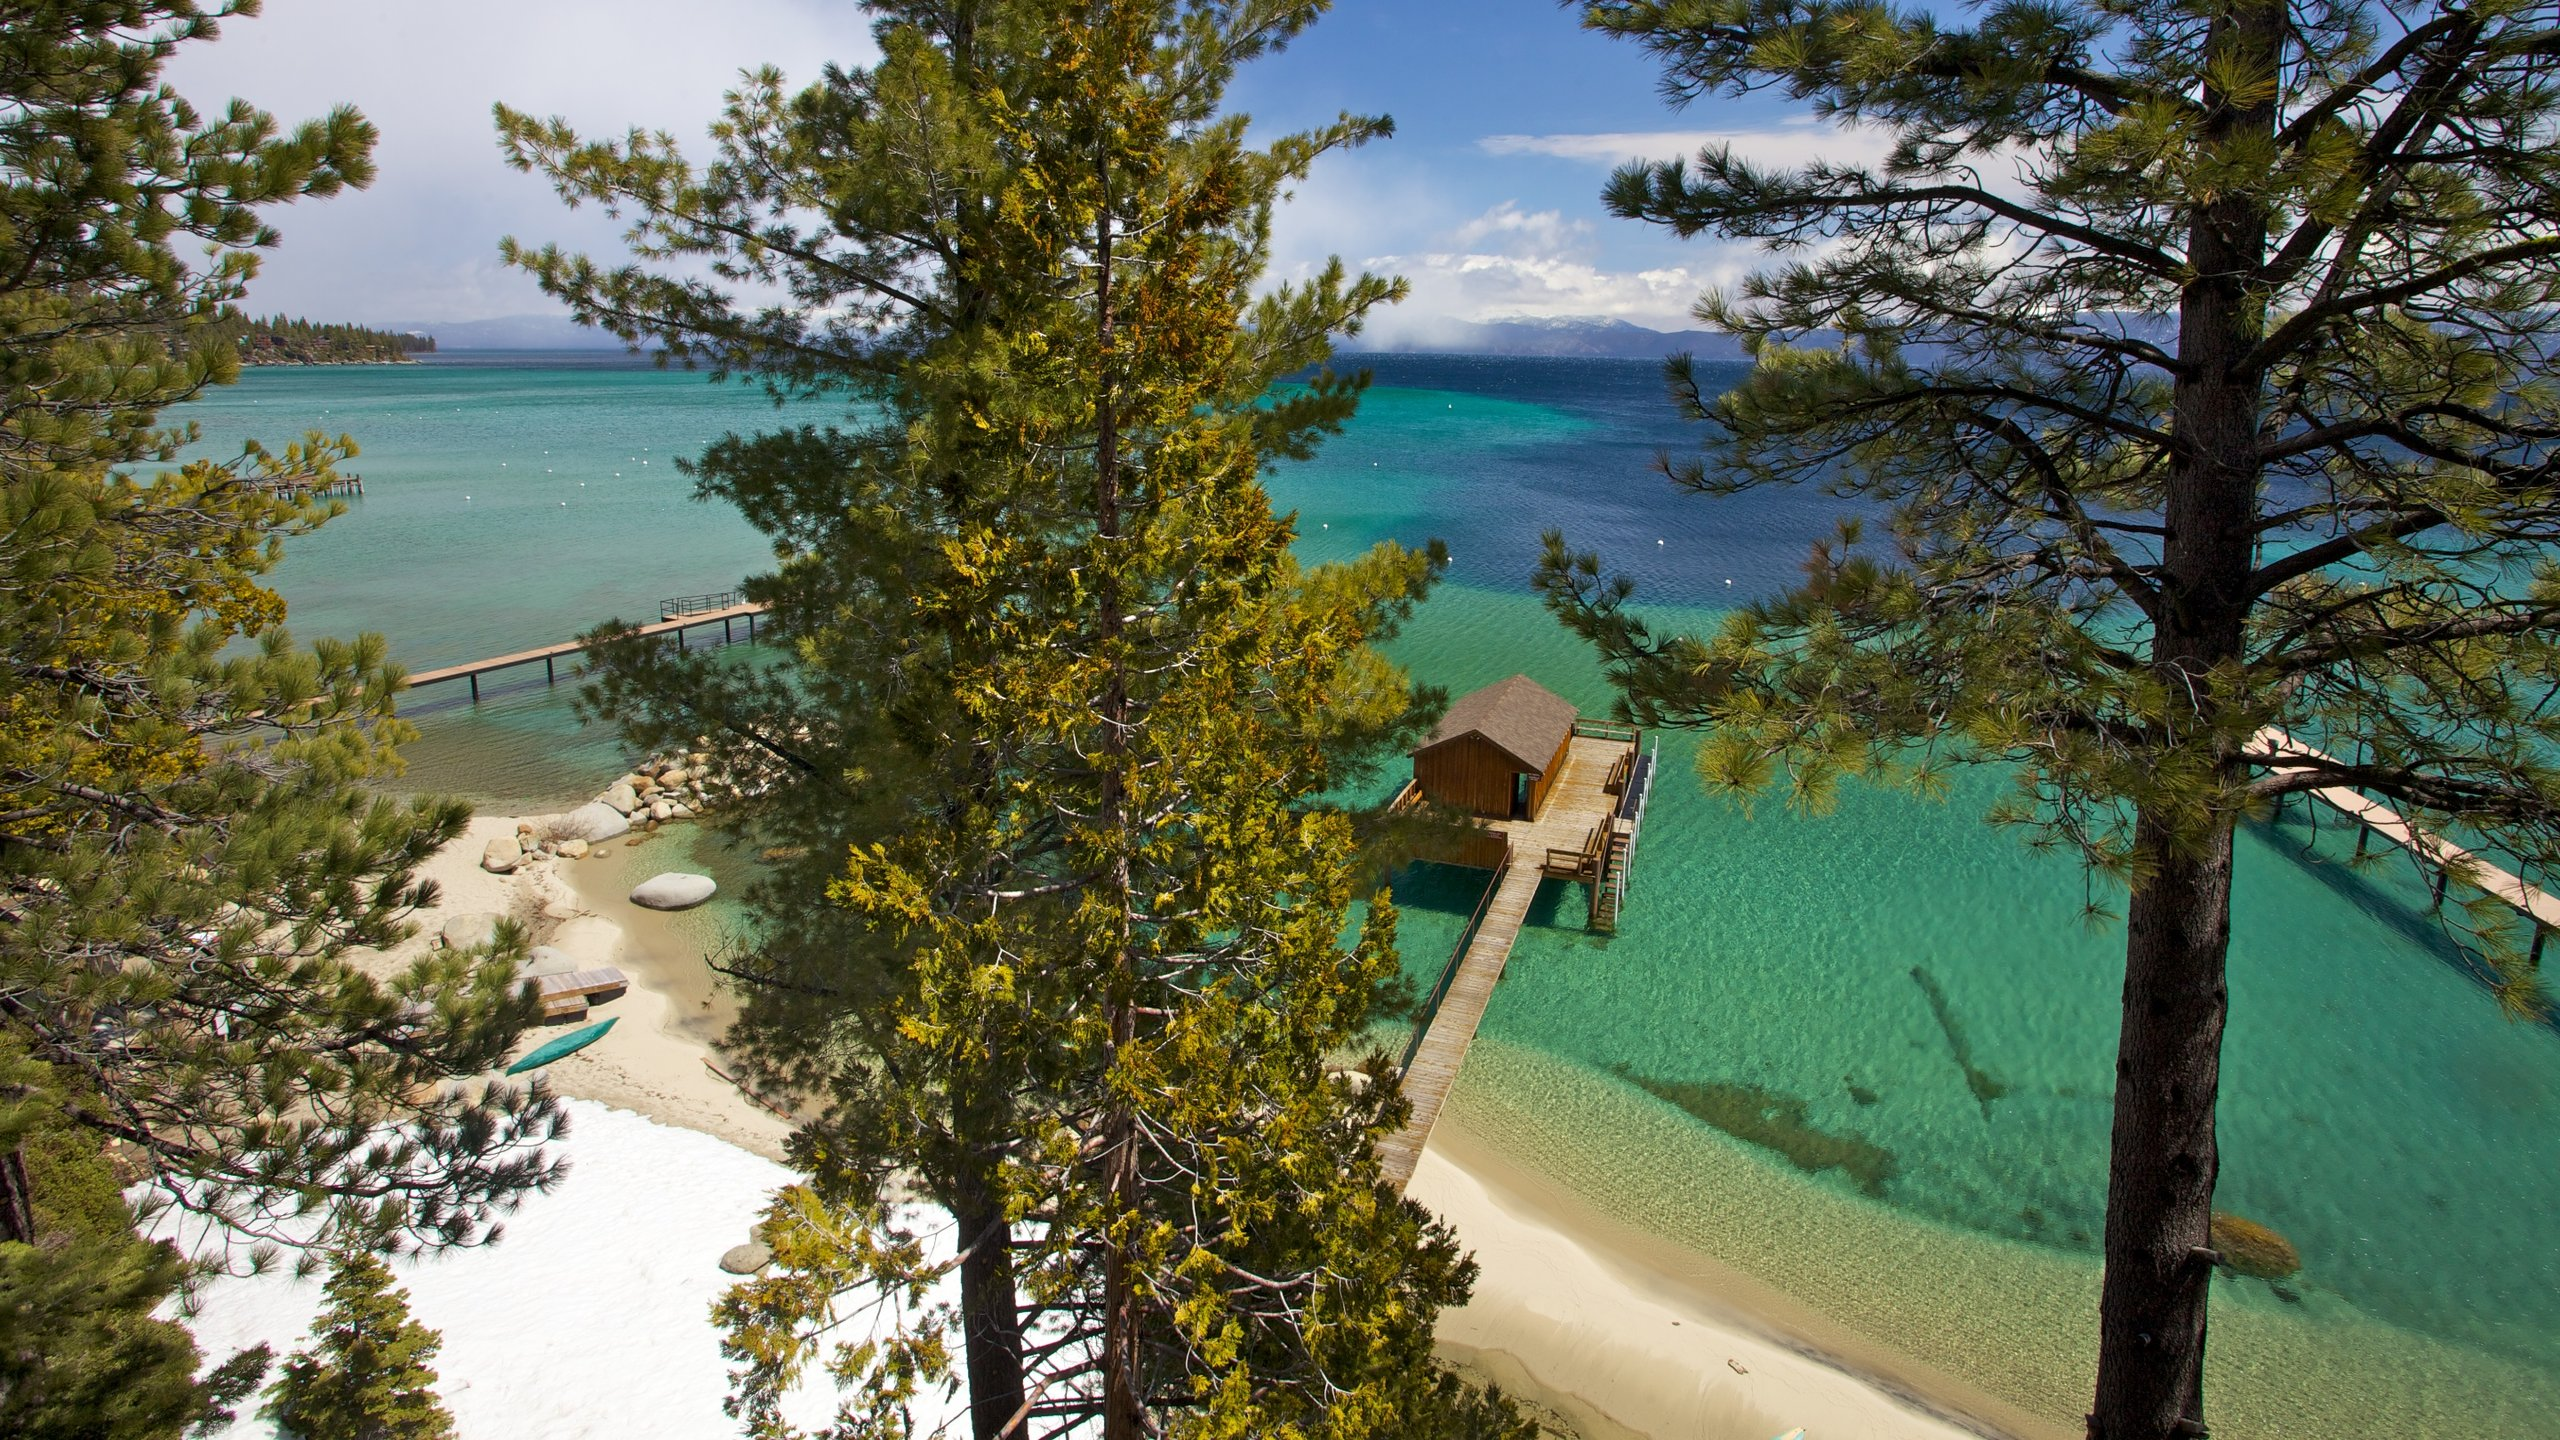 Lake Tahoe ALL INCLUSIVE Hotels  Resorts from 209night